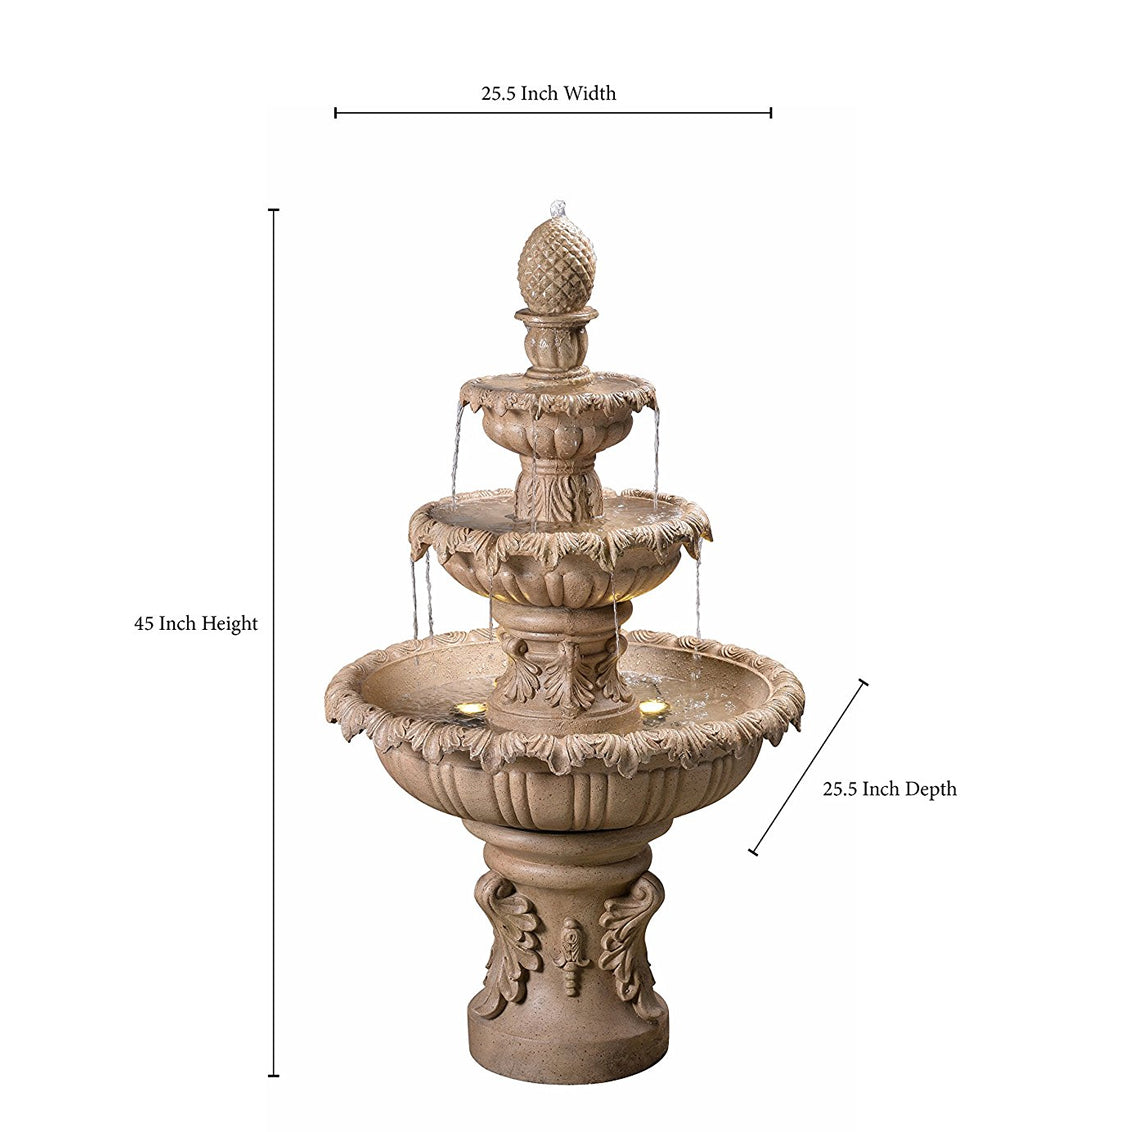 Ibiza Tiered Outdoor Fountain in Sandstone Finish - Soothing Walls